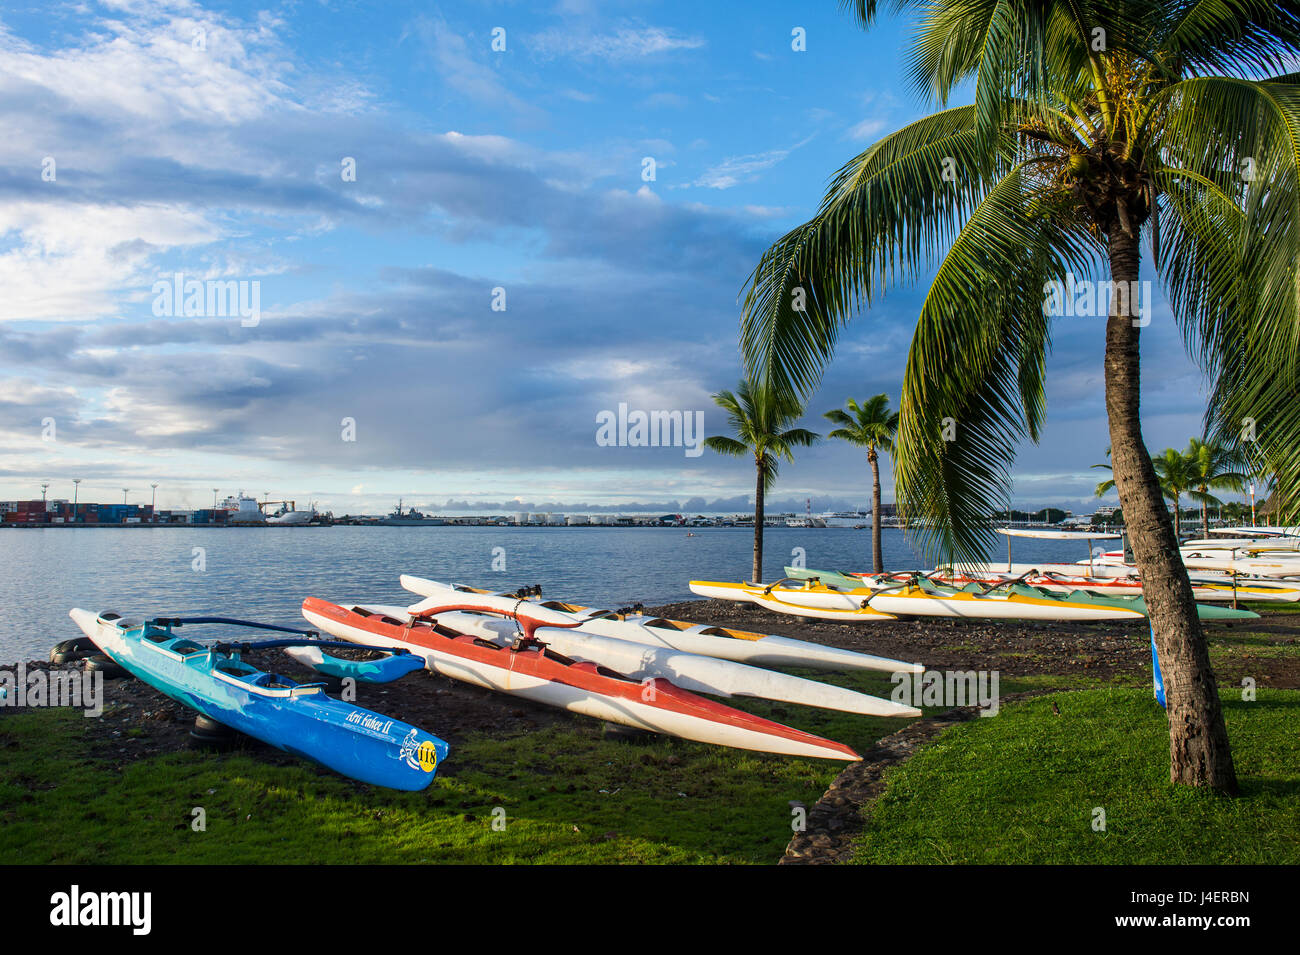 Many kayaks on the beach of Papeete, Tahiti, Society Islands, French Polynesia, Pacific - Stock Image